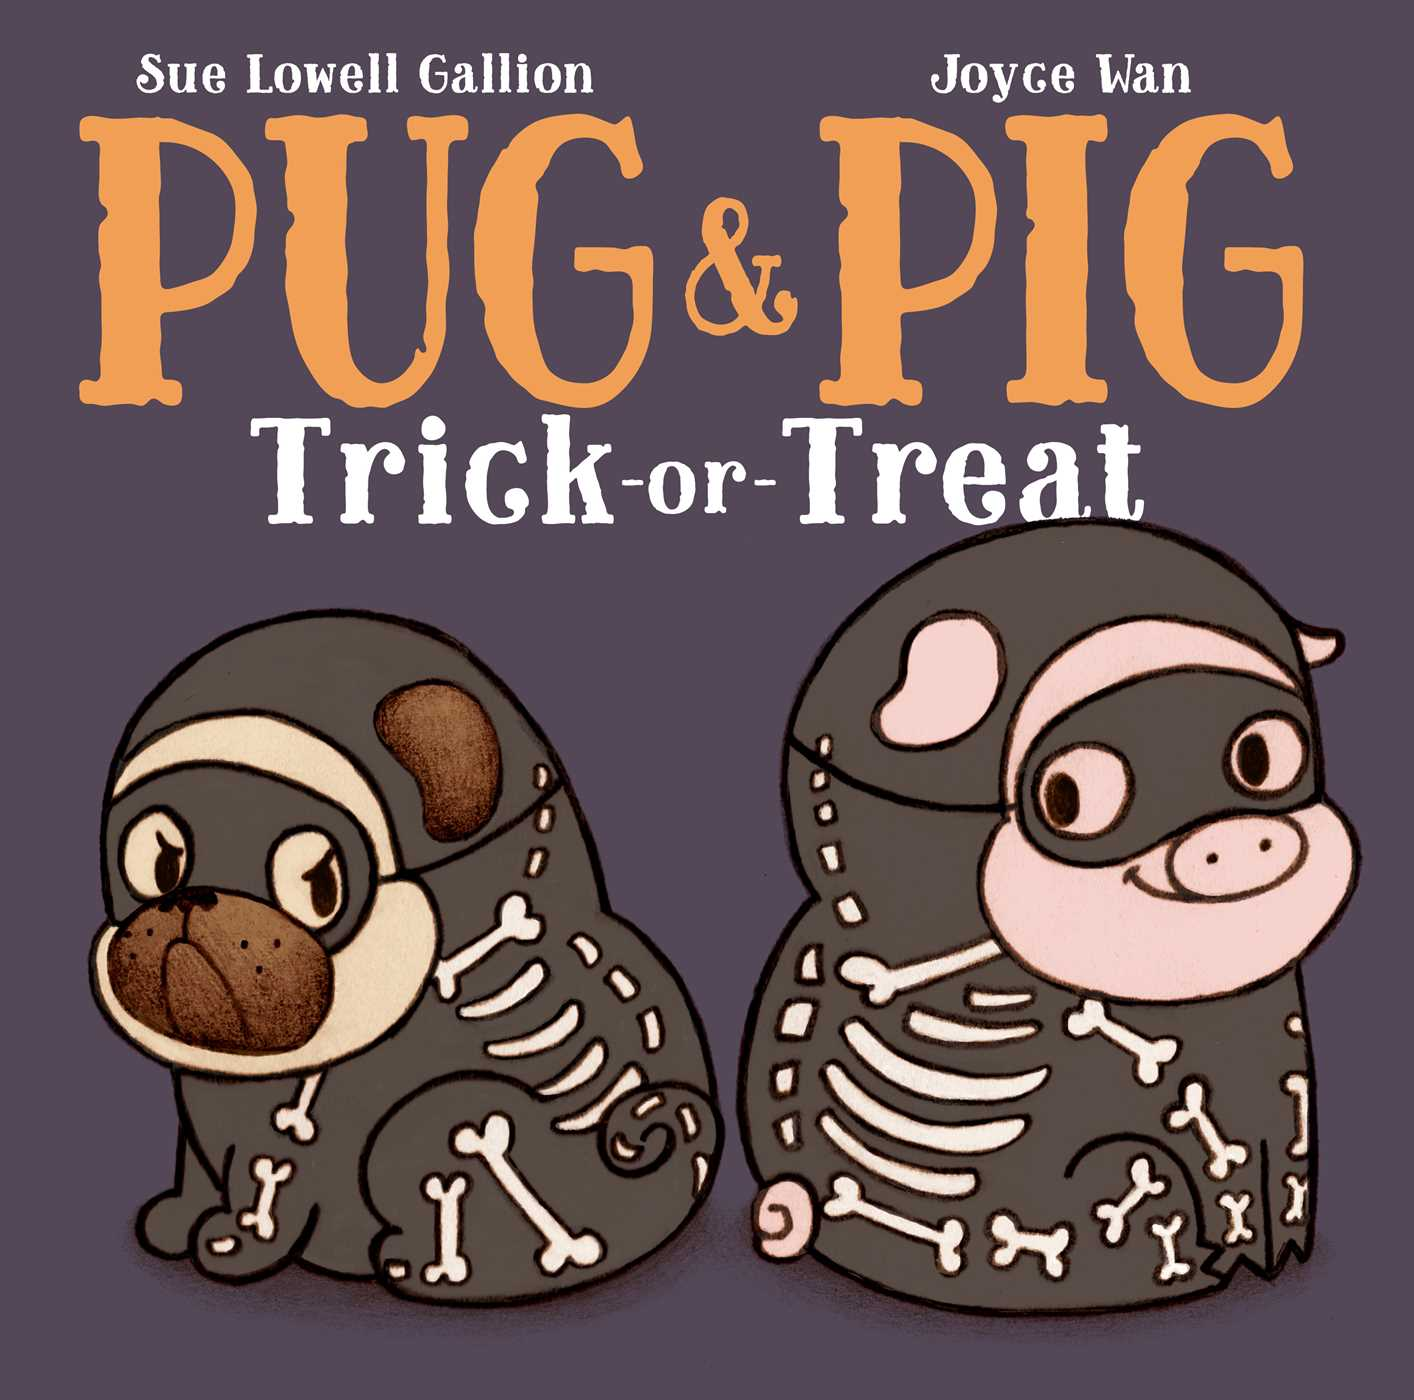 Pug pig trick or treat 9781481449779 hr